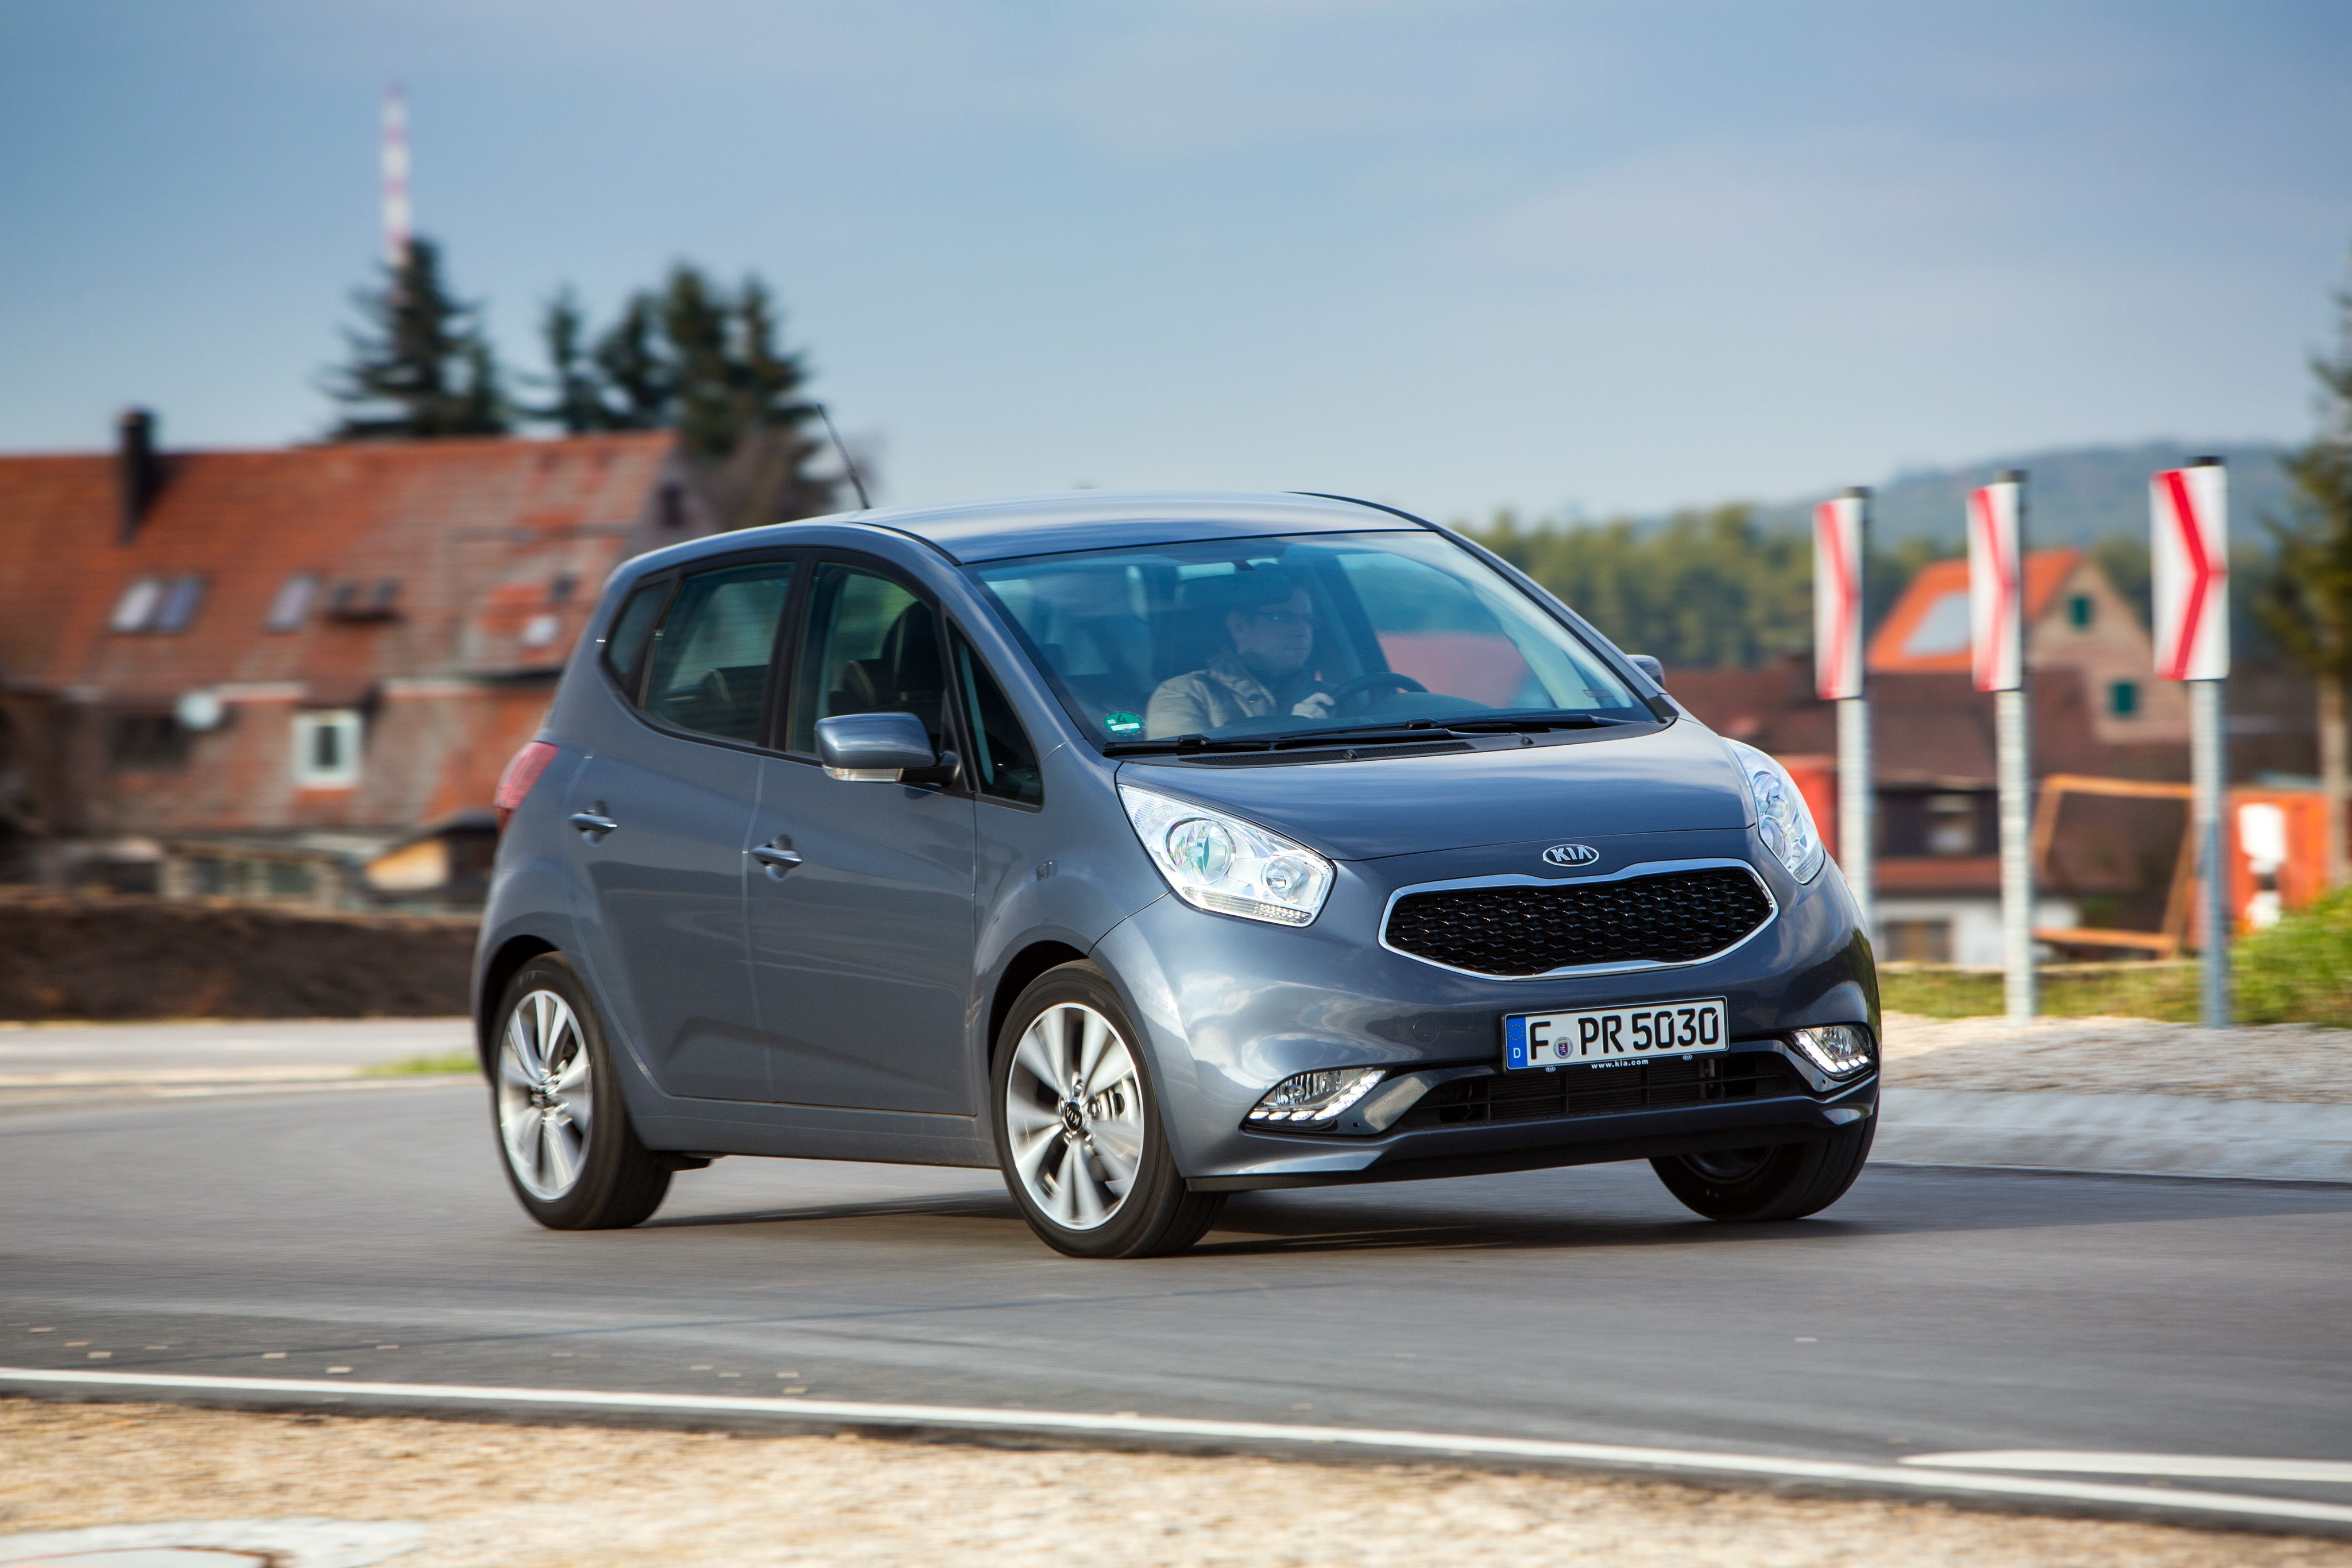 KIA Venga specs & photos - 2014, 2015, 2016, 2017, 2018, 2019 - autoevolution